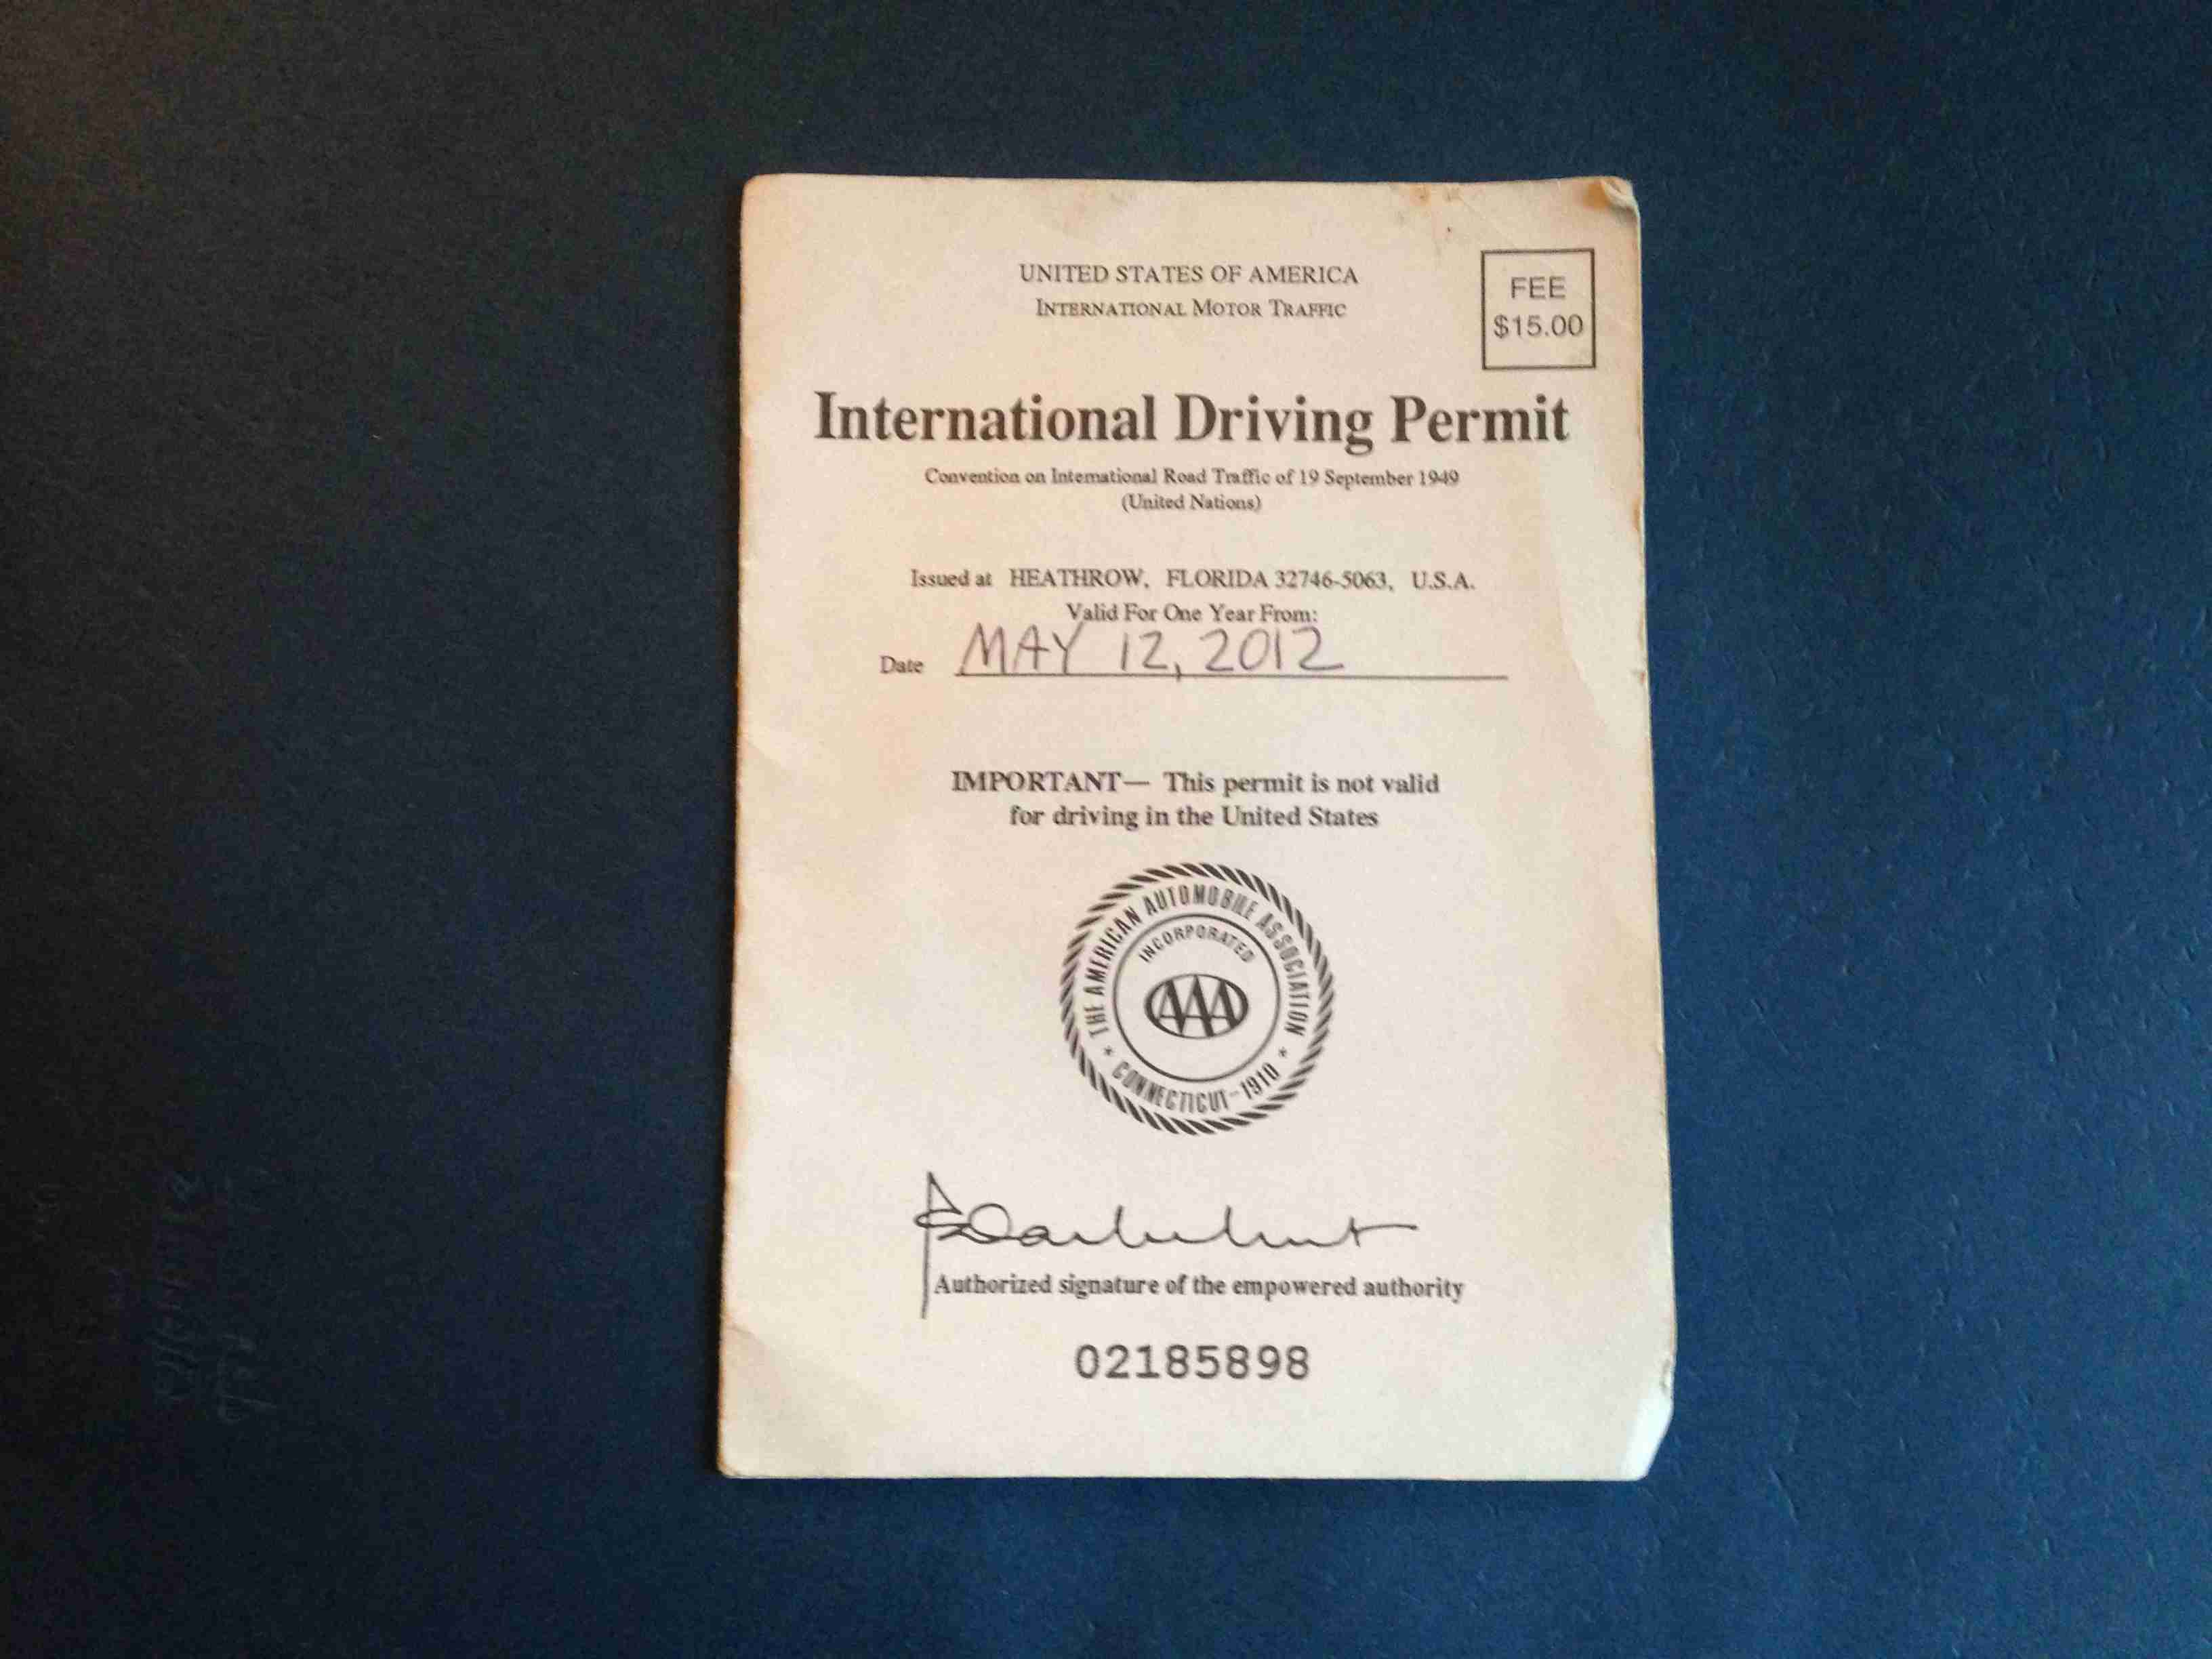 Some countries require foreign drivers to obtain an International Driving Permit